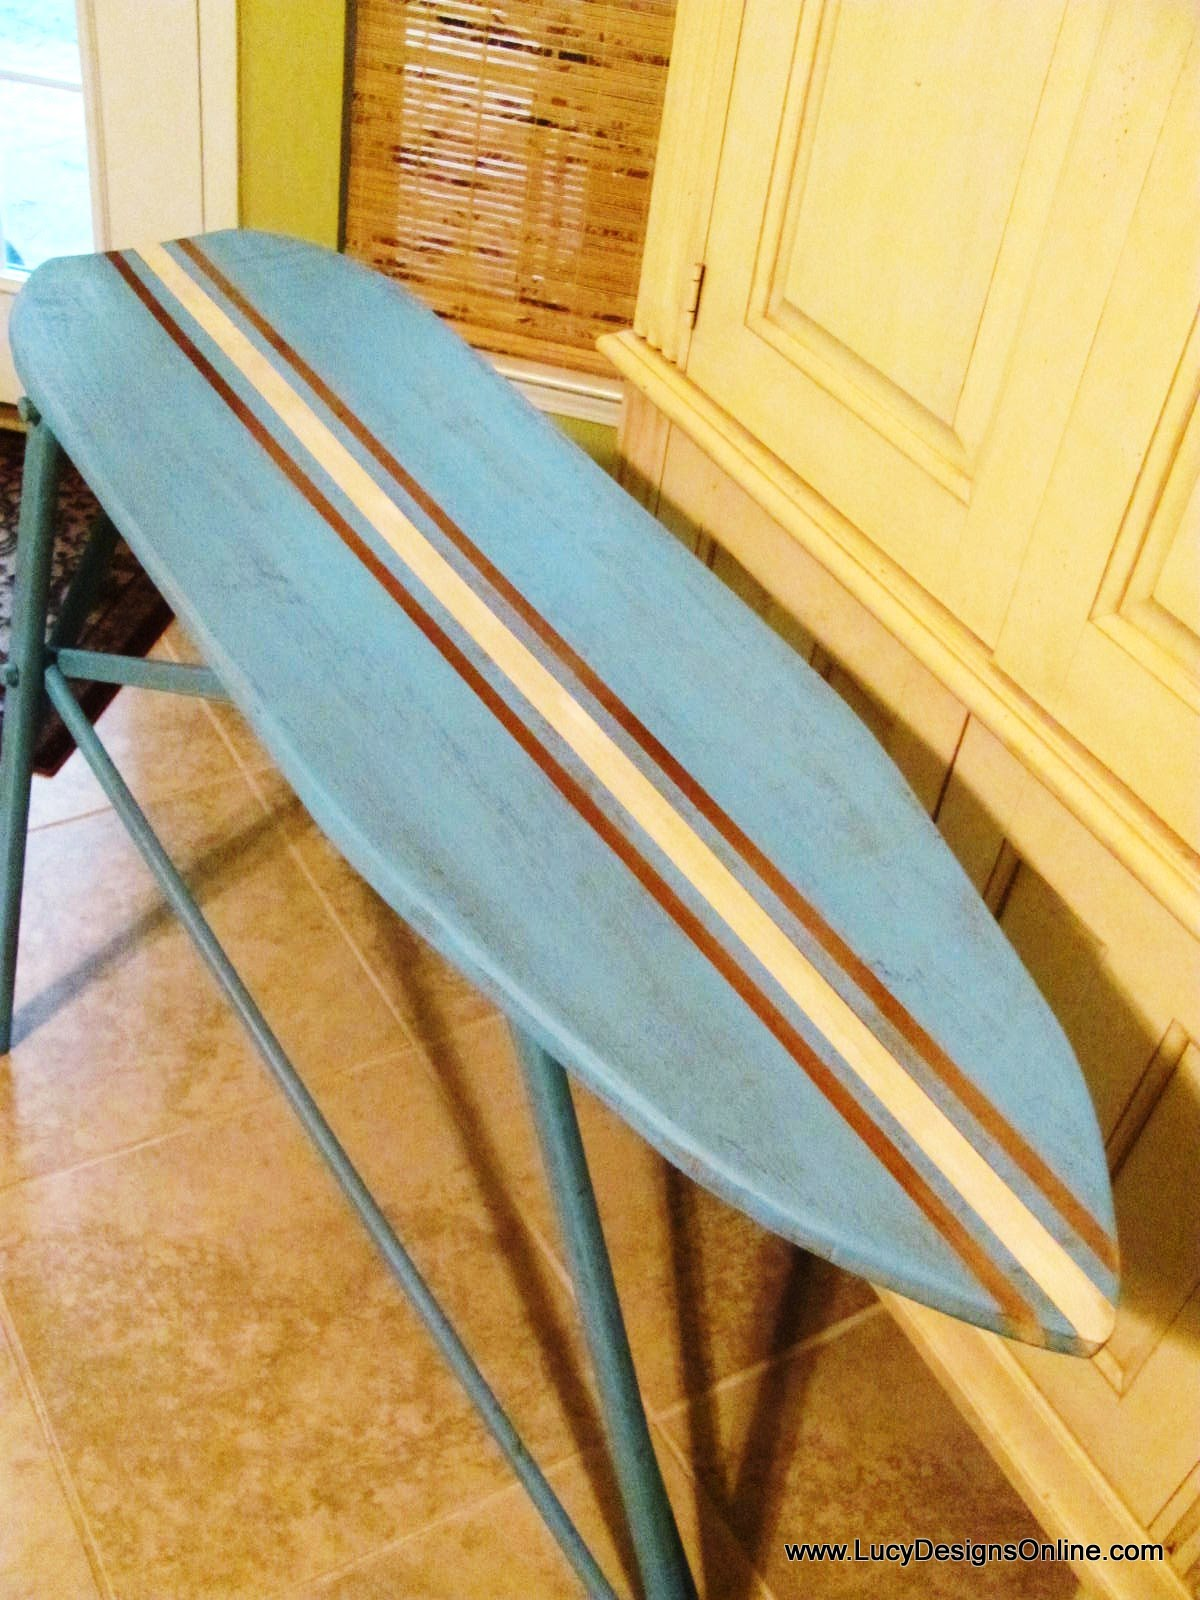 Ironing Board To Surf Board Table. Surfboard Table